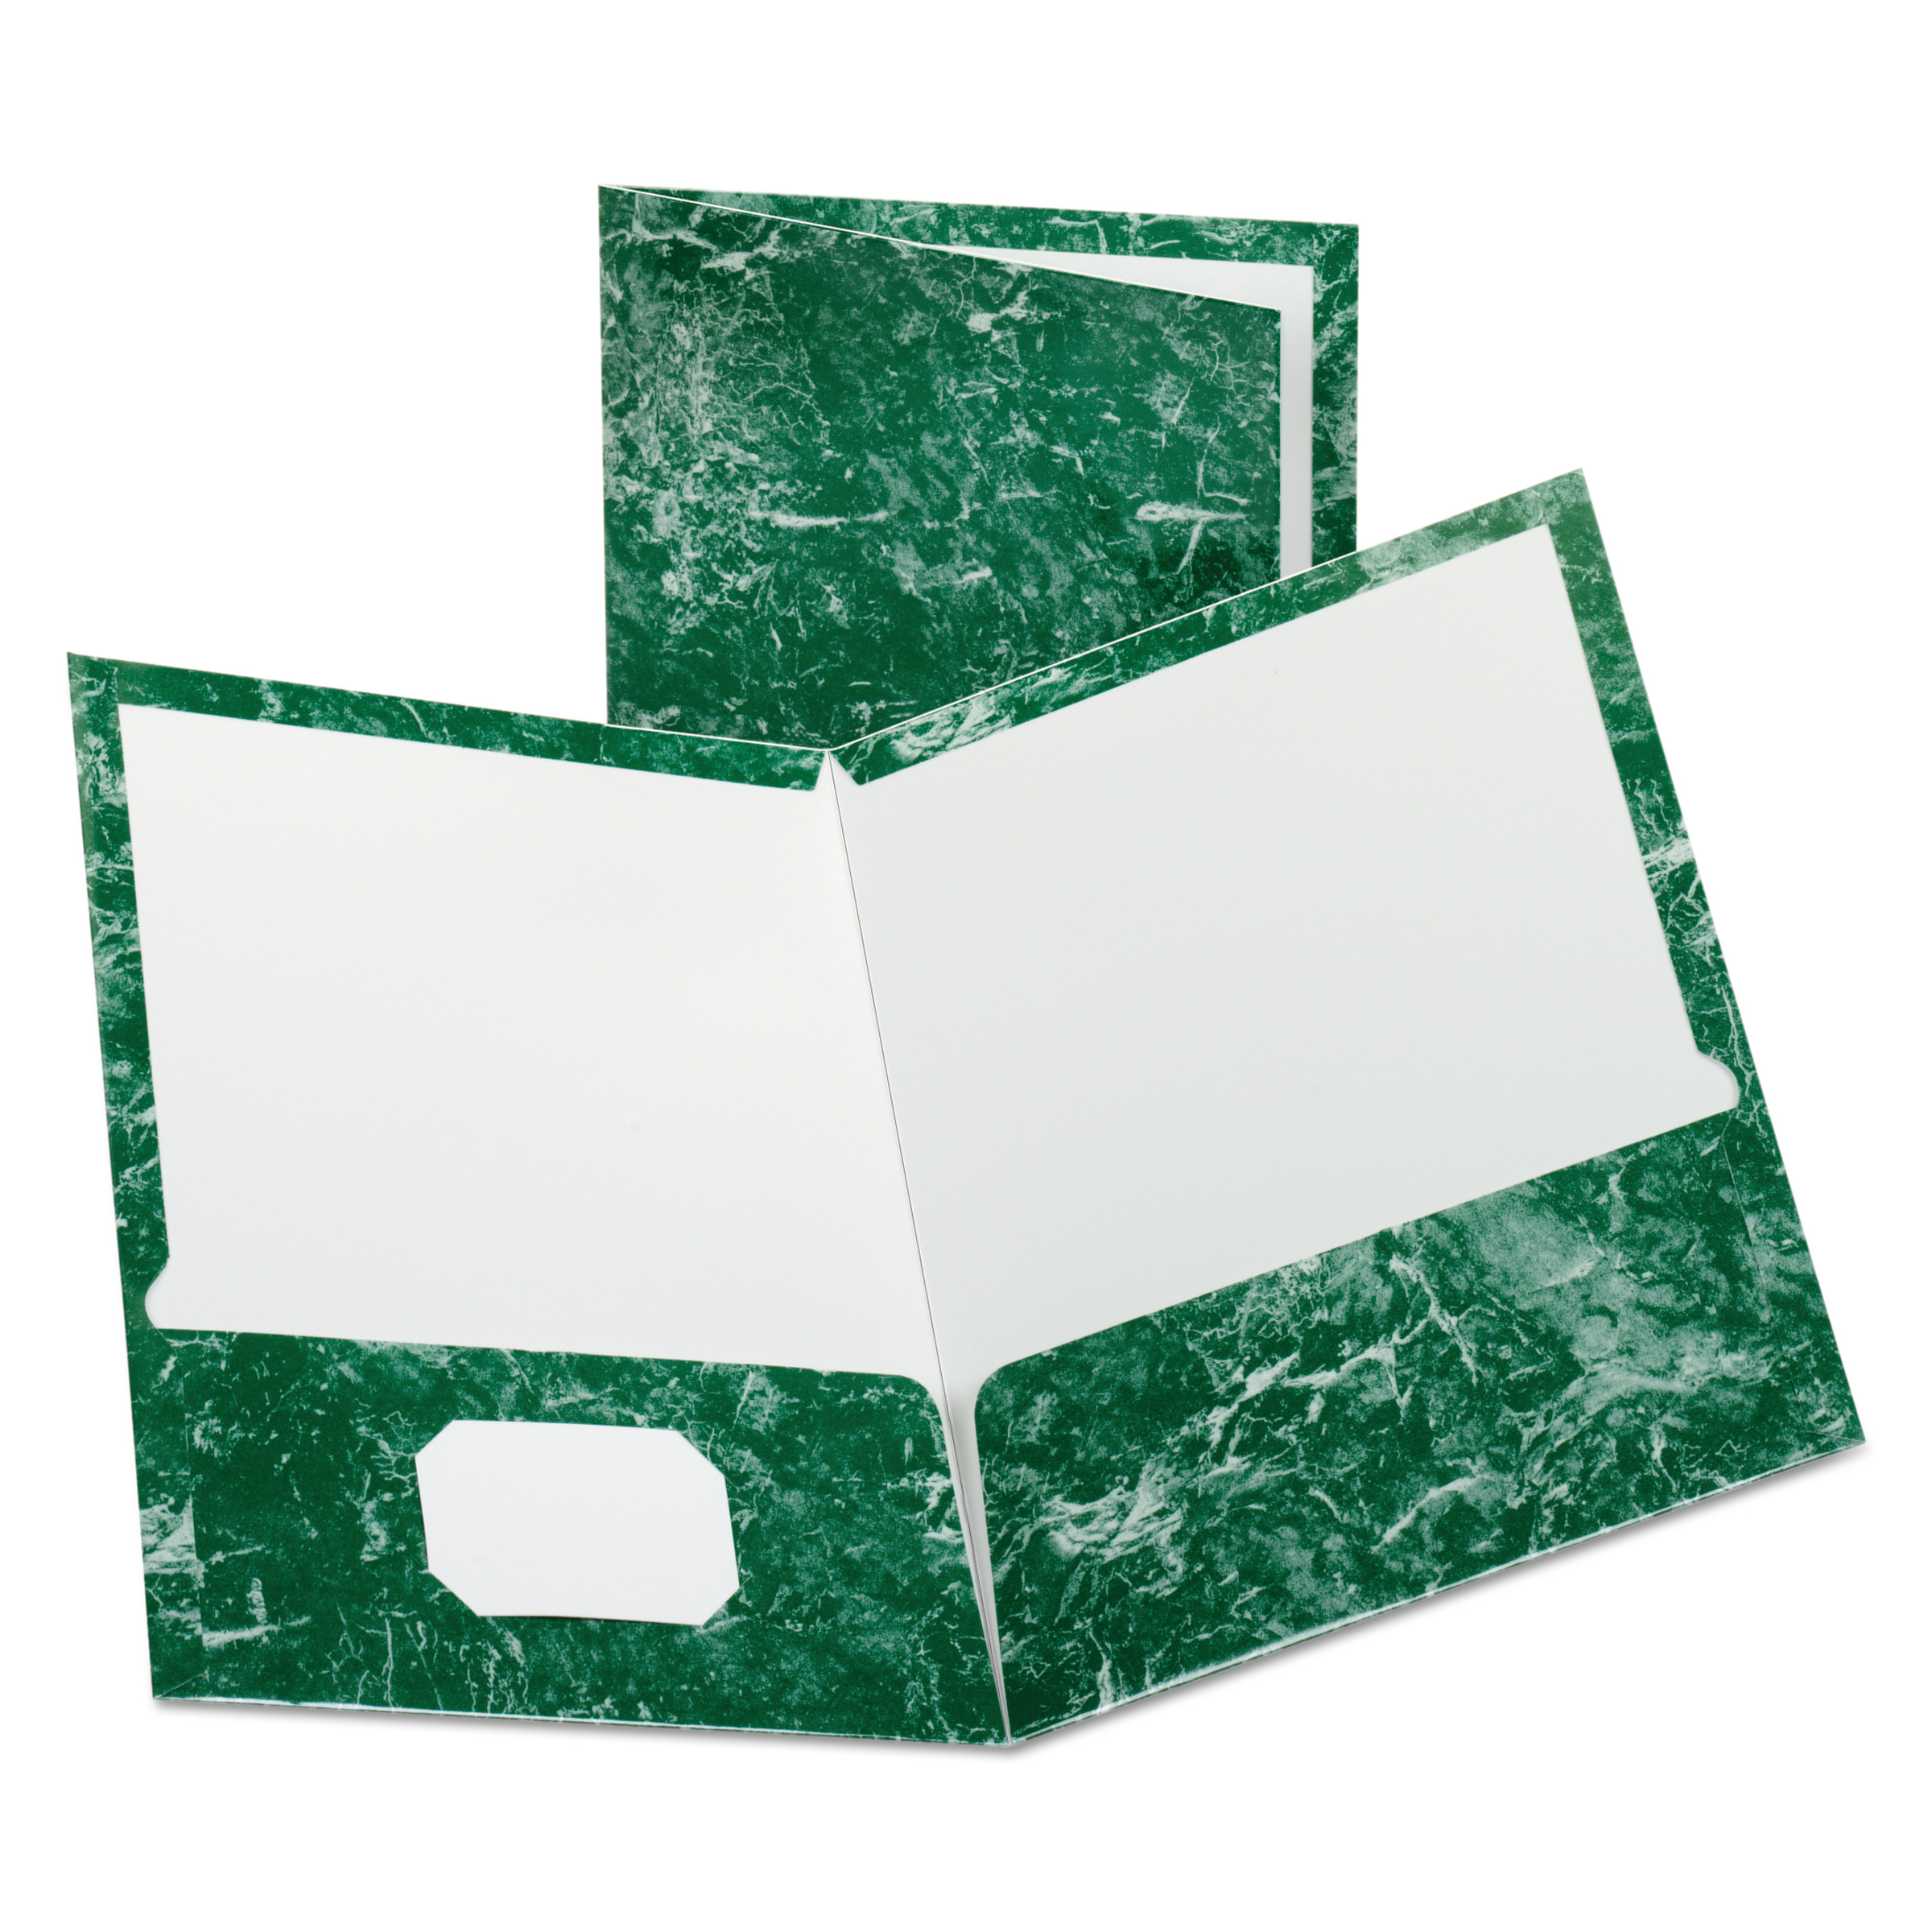 Oxford Marble Design Laminated High Gloss Twin Pocket Folder, Emerald Green, 25/box -OXF51617